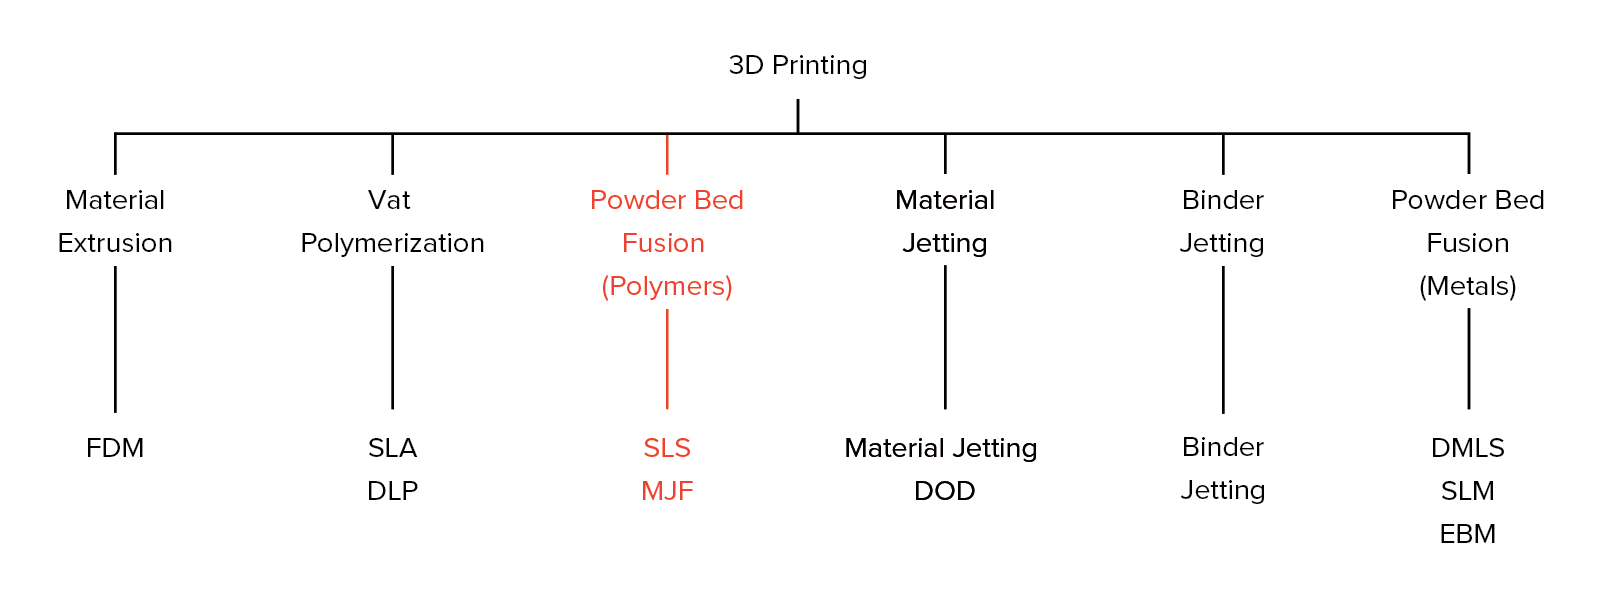 HP MJF vs  SLS: A 3D Printing Technology Comparison | 3D Hubs